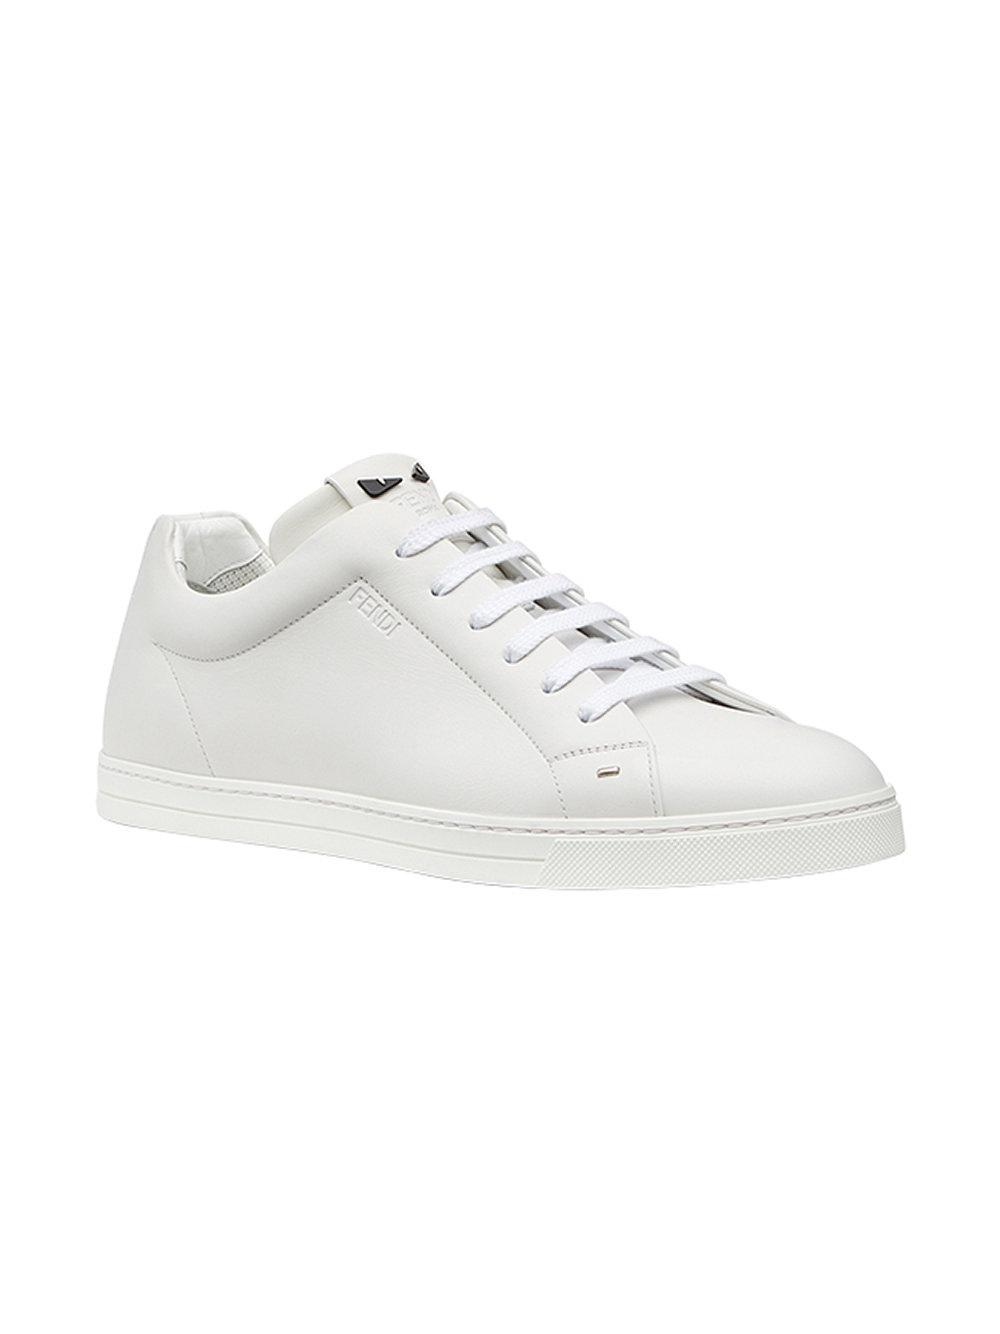 3a3ac15c04ac Fendi Bag Bugs Lace-up Sneakers in White for Men - Lyst